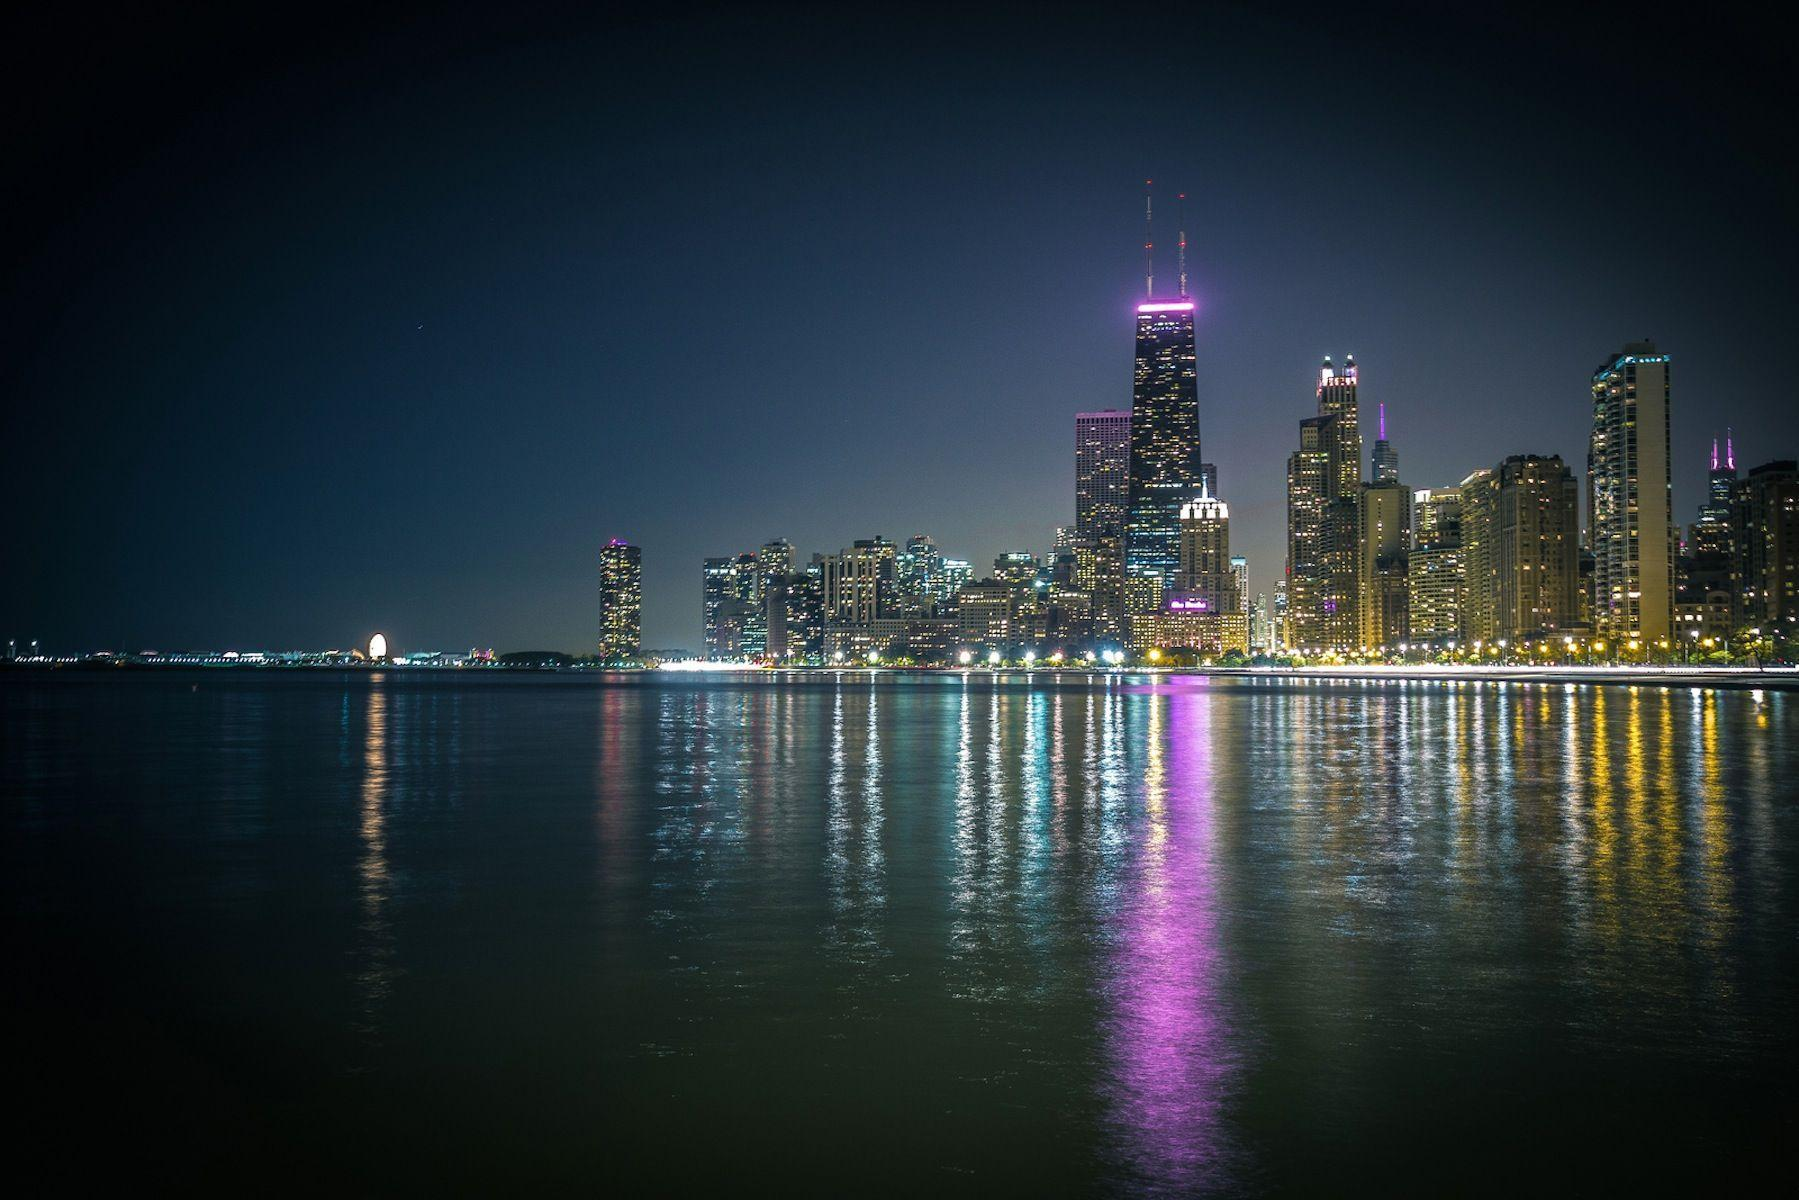 Night City Of Chicago HD Wallpaper